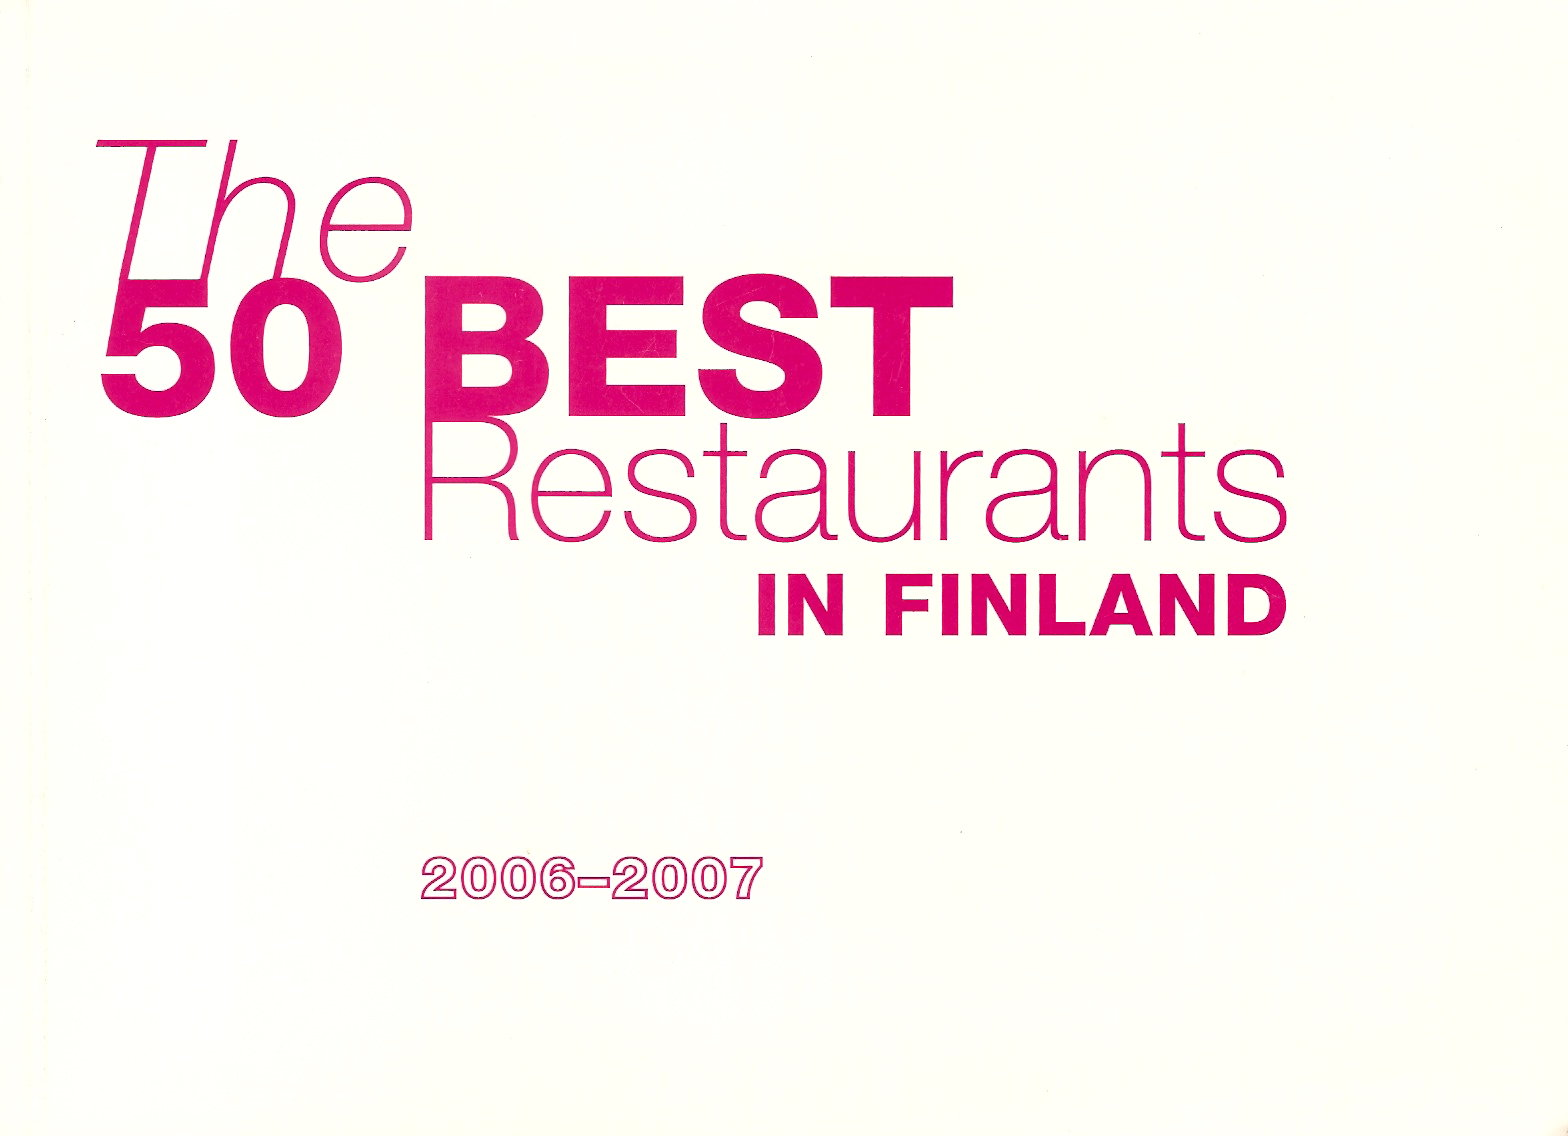 The 50 Best Restaurants in Finland 2006-2007